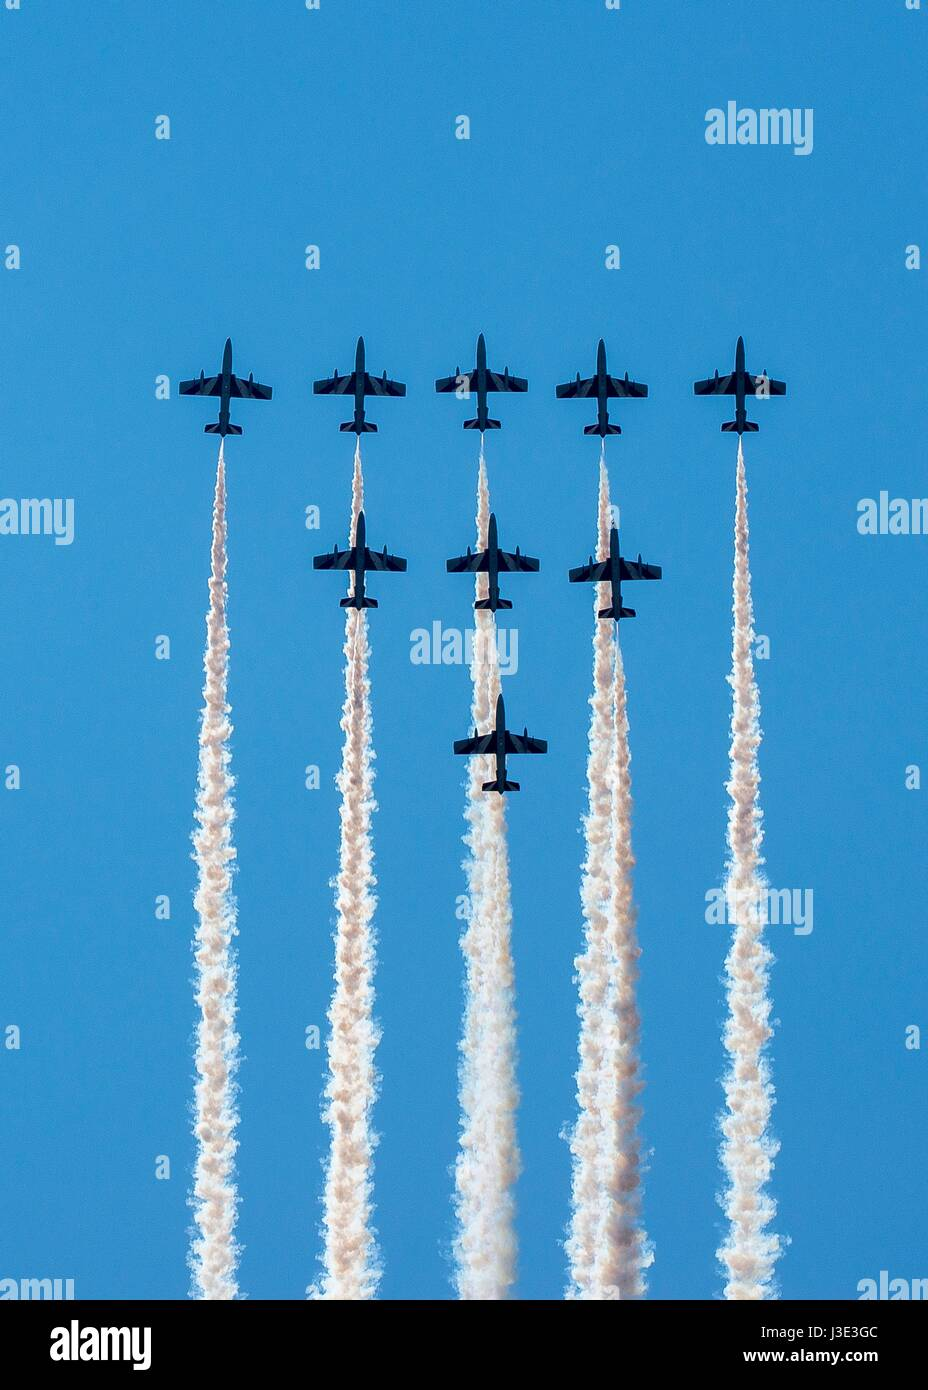 The Italian Air Force Frecce Tricolori aerial demonstration team aircraft practice flying formations over the Aviano - Stock Image